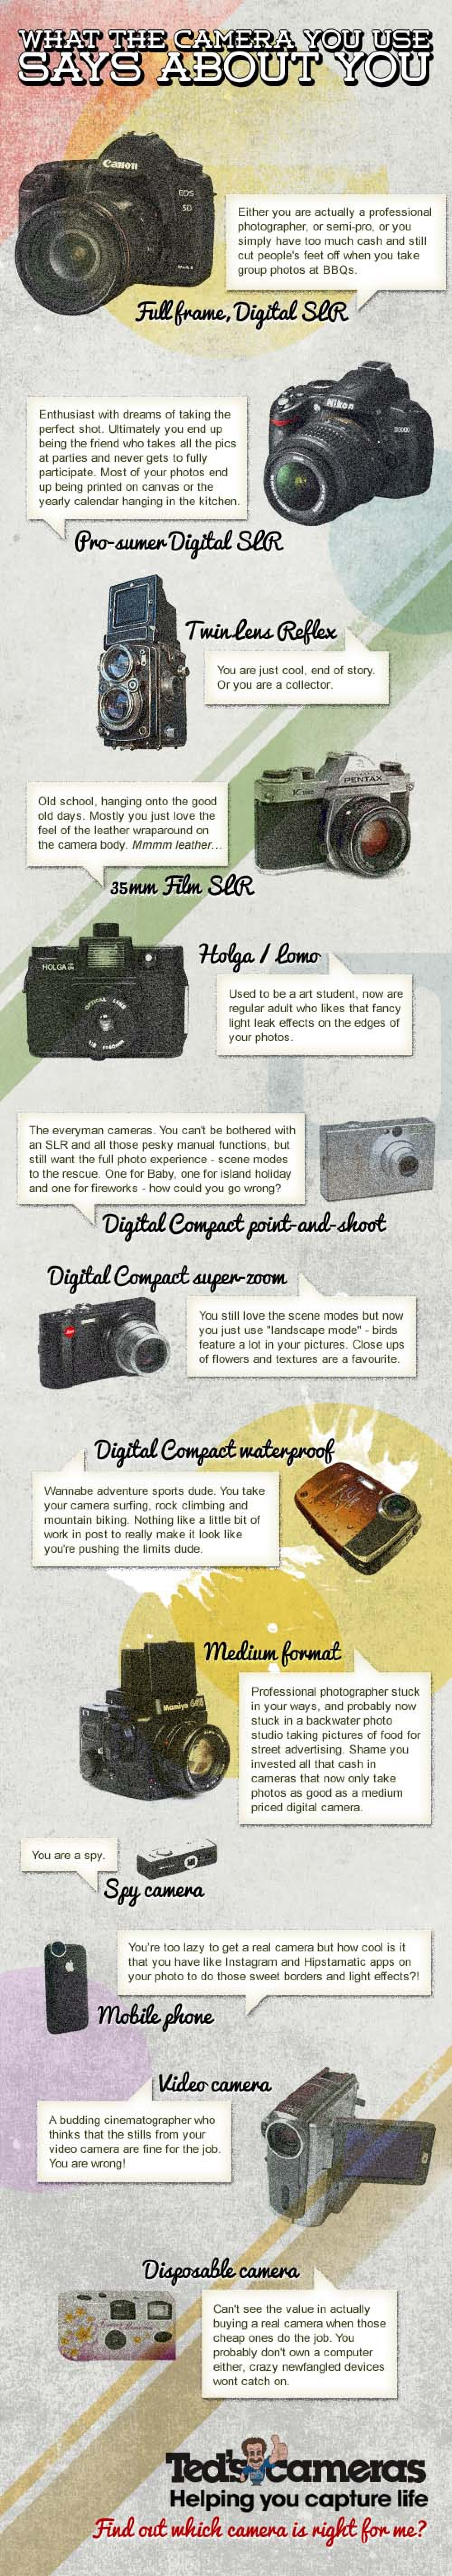 What Does Your Camera Say About You? Infographic